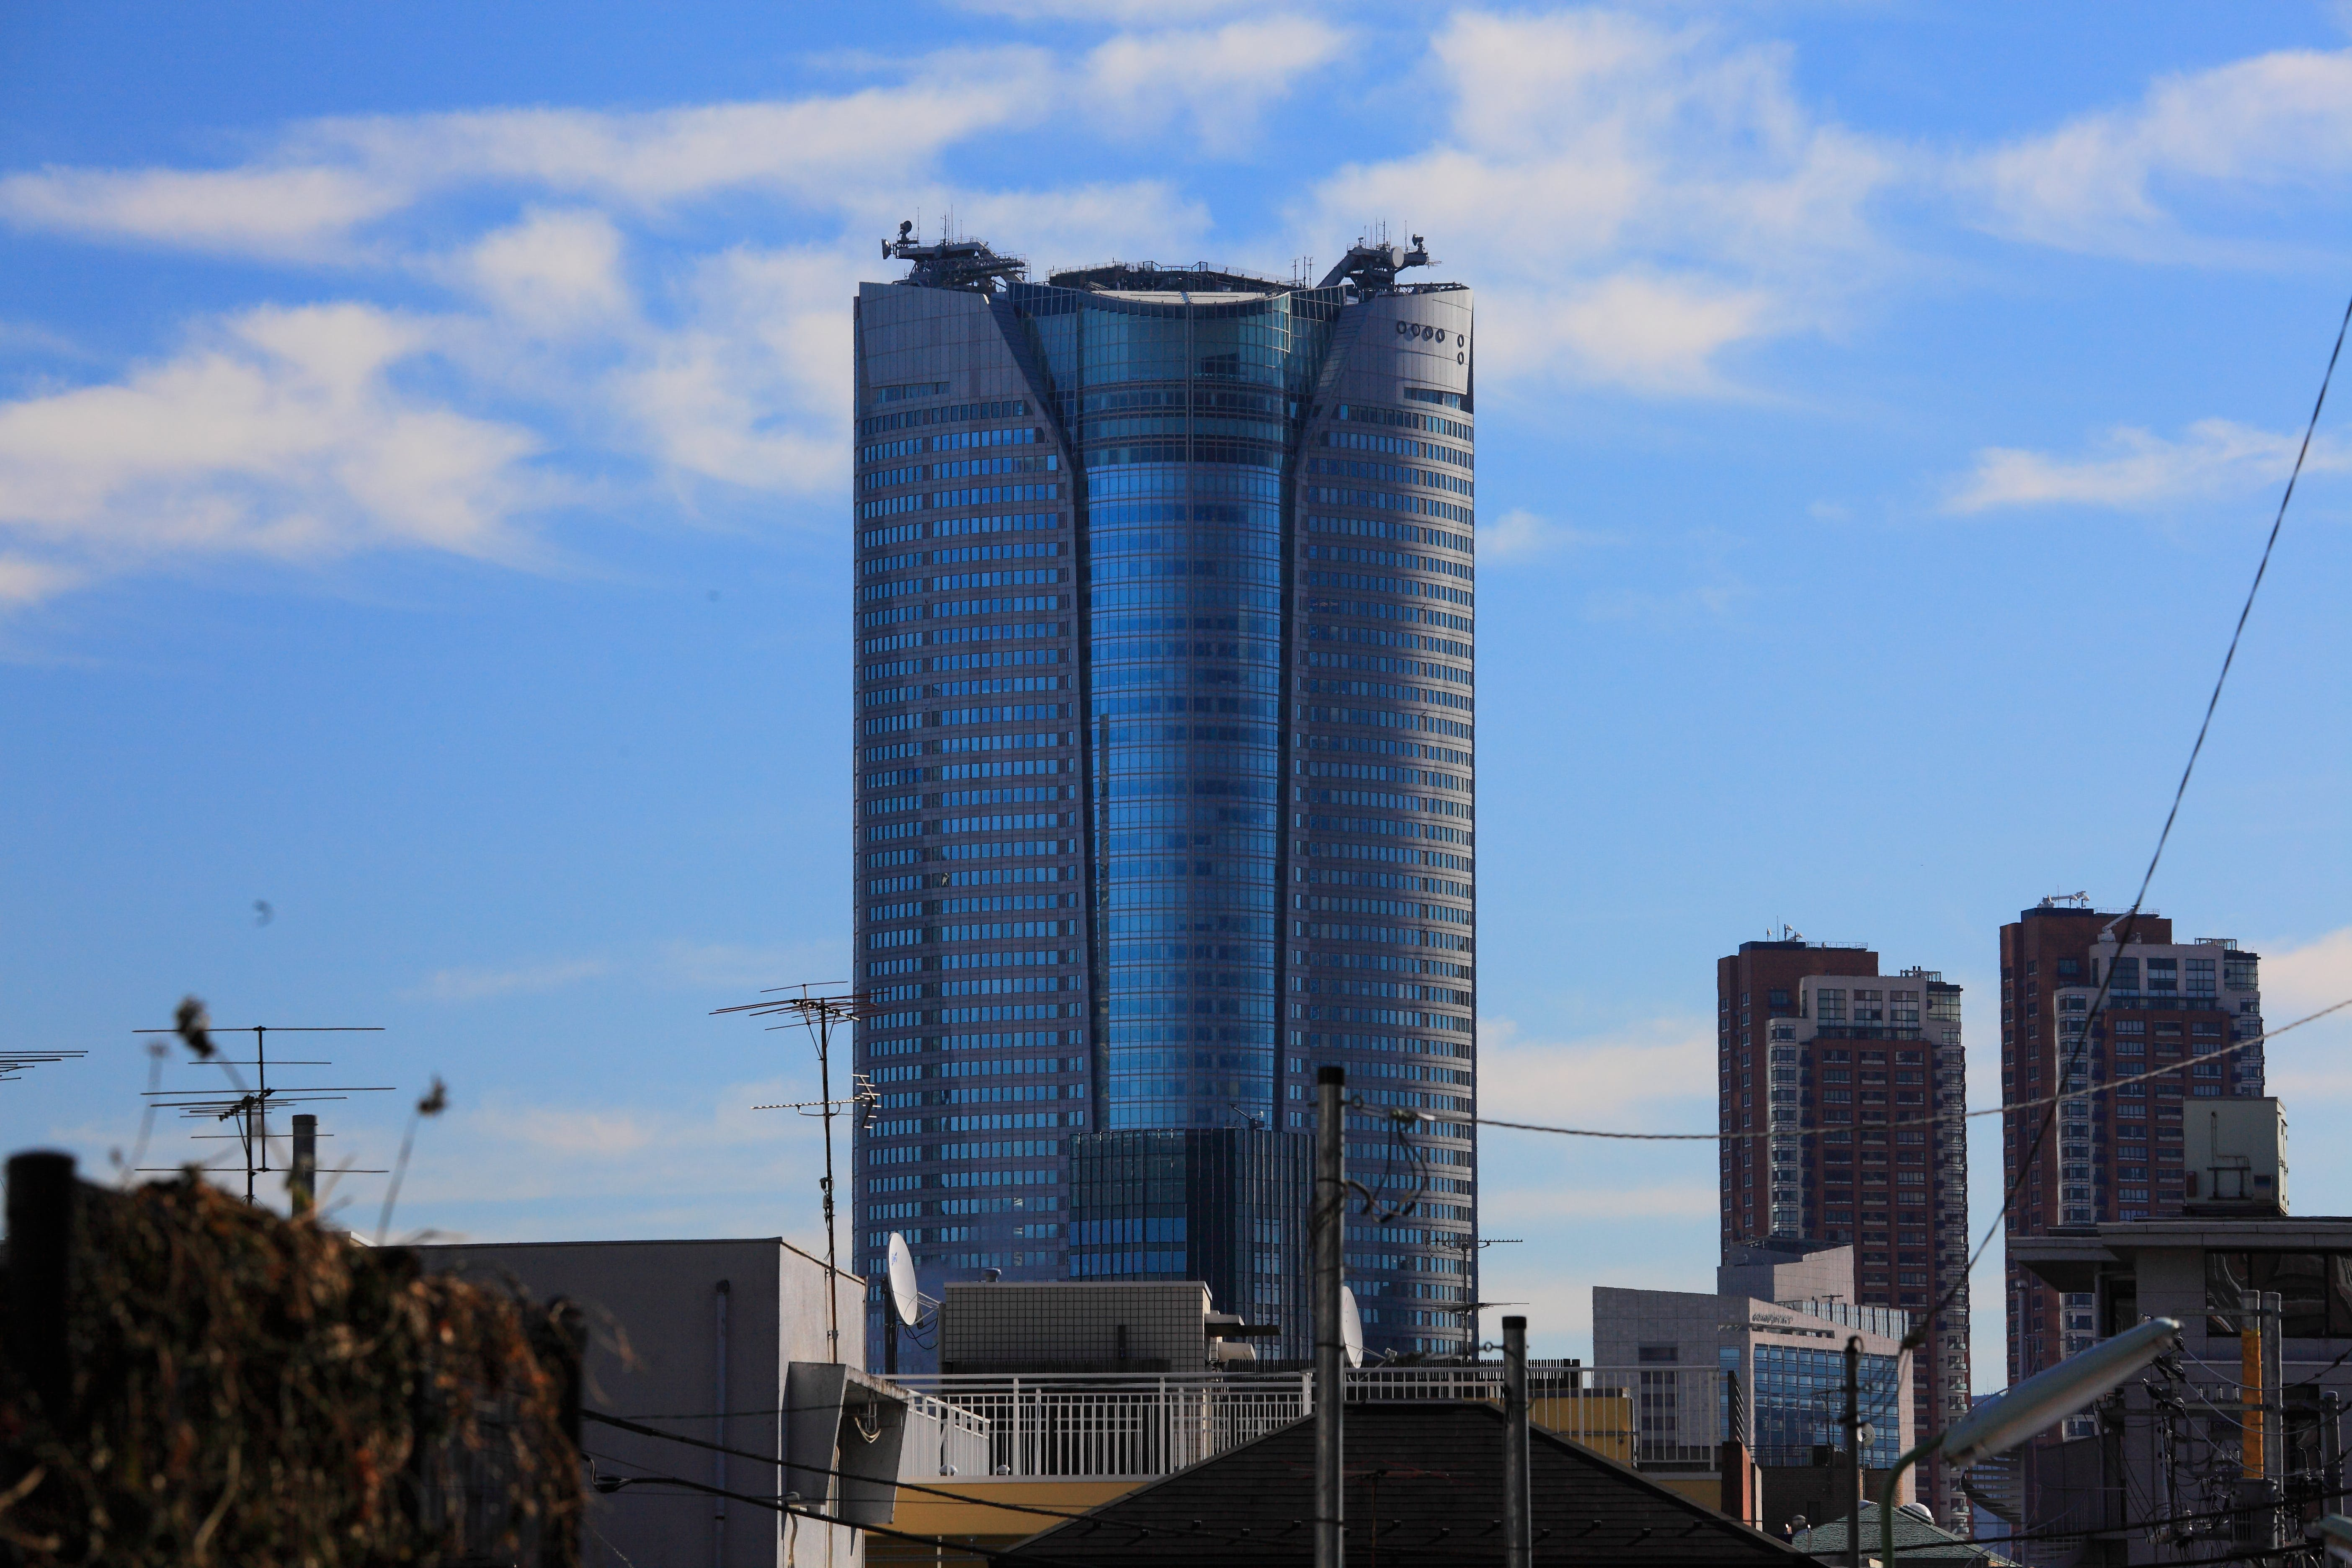 Free stock photo of sky, blue, building, glass